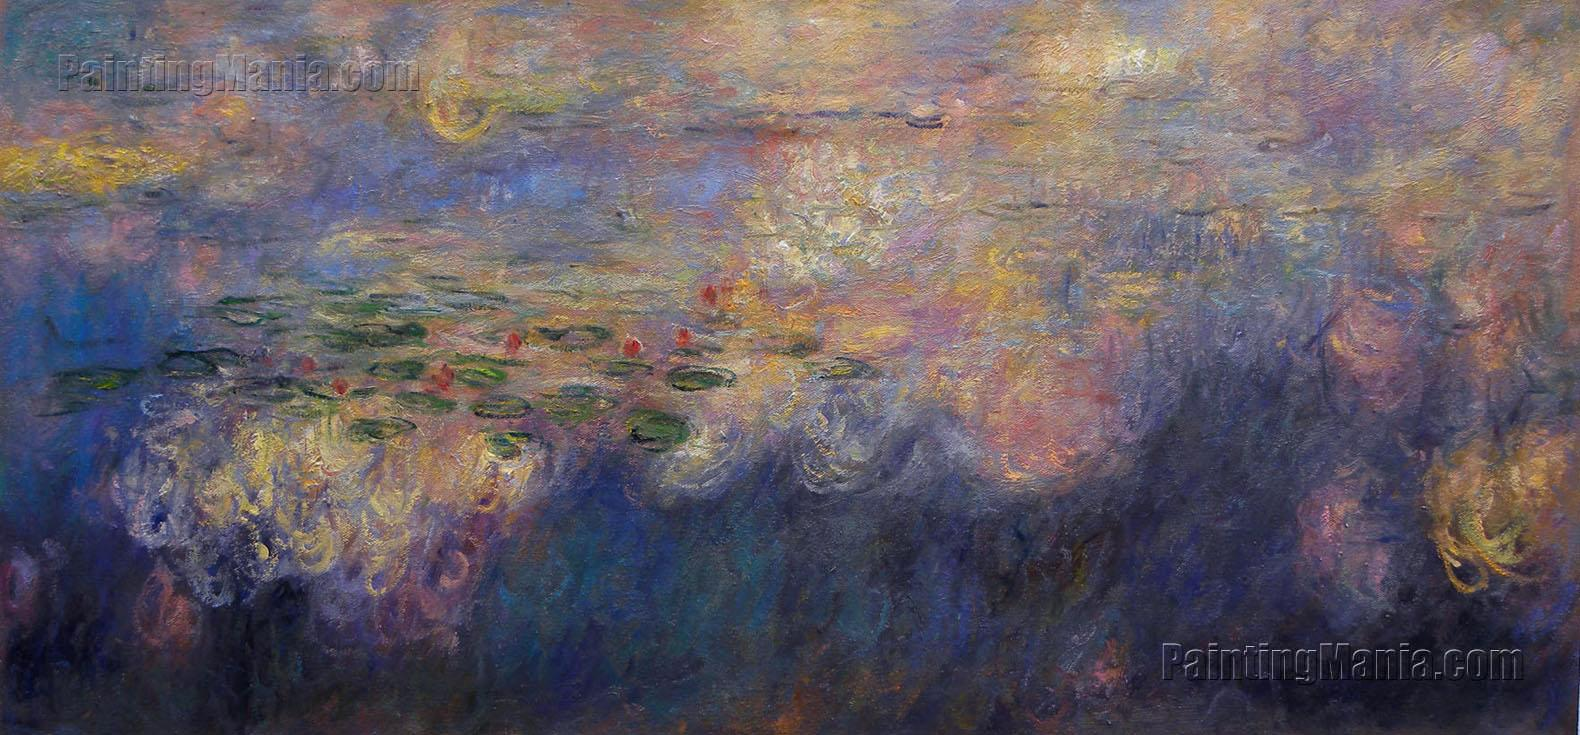 Reflections of Clouds on the Water-Lily Pond (triptych, center panel)